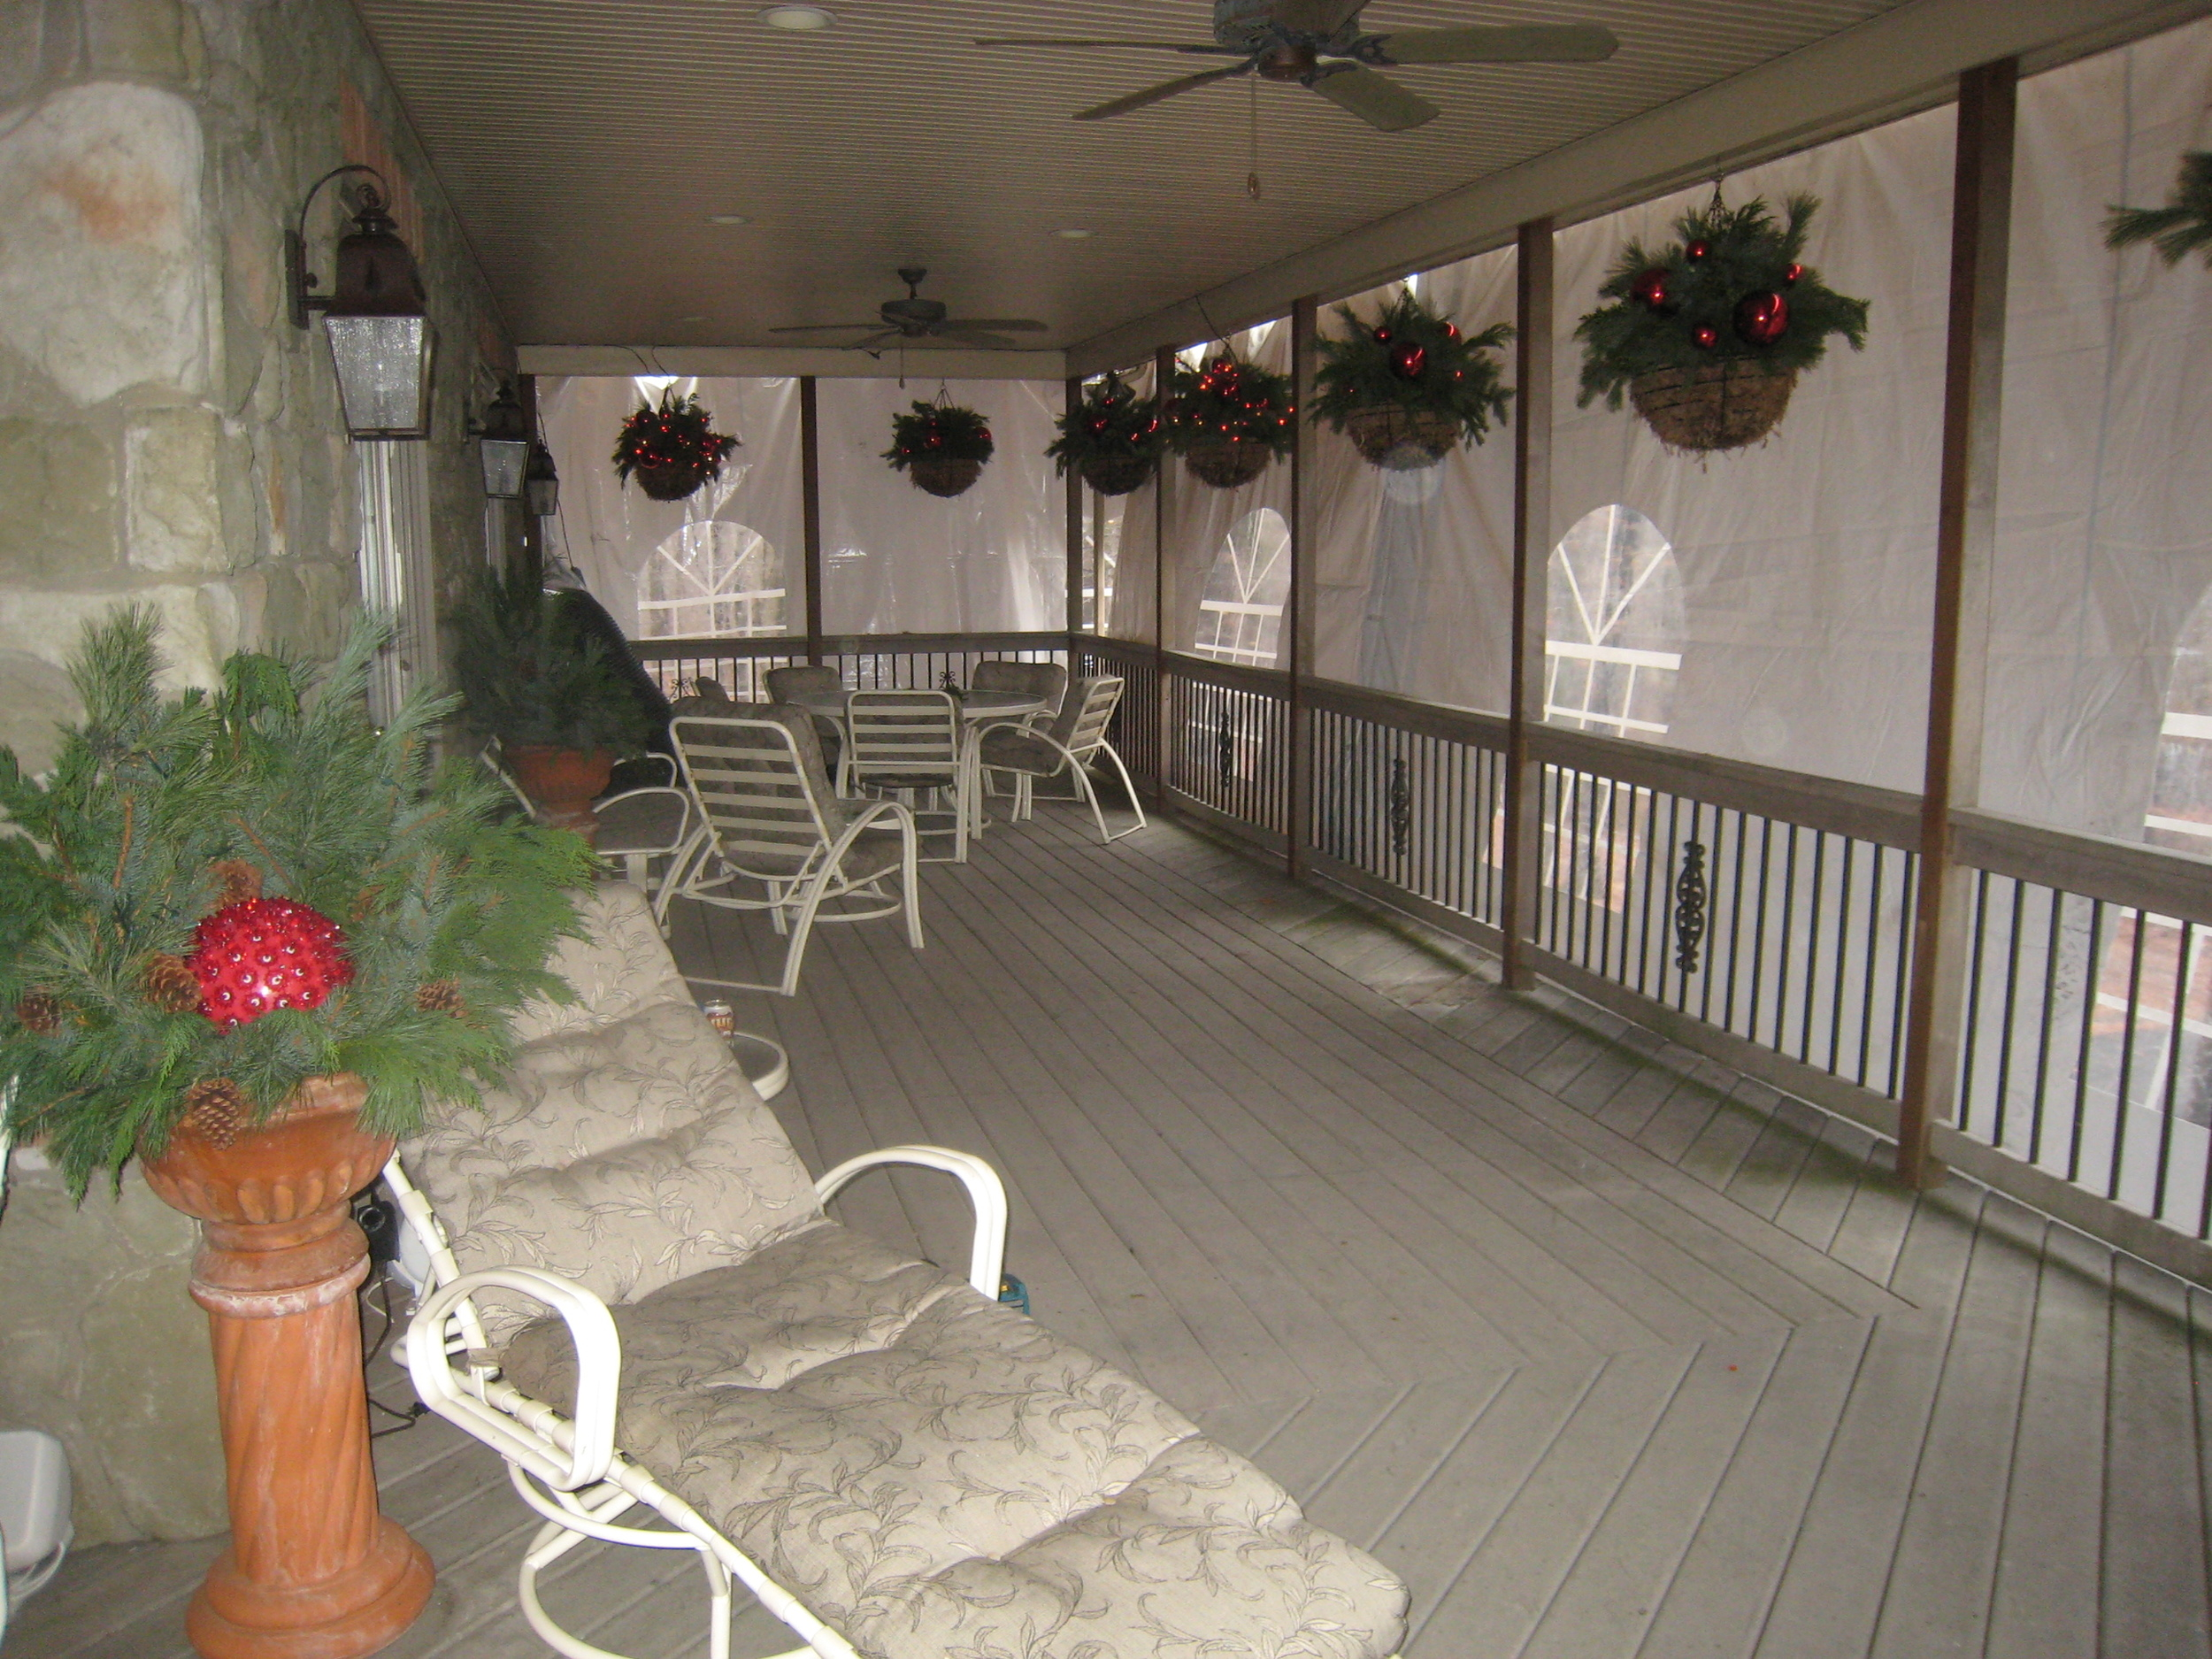 Patio enclosed with tent walls